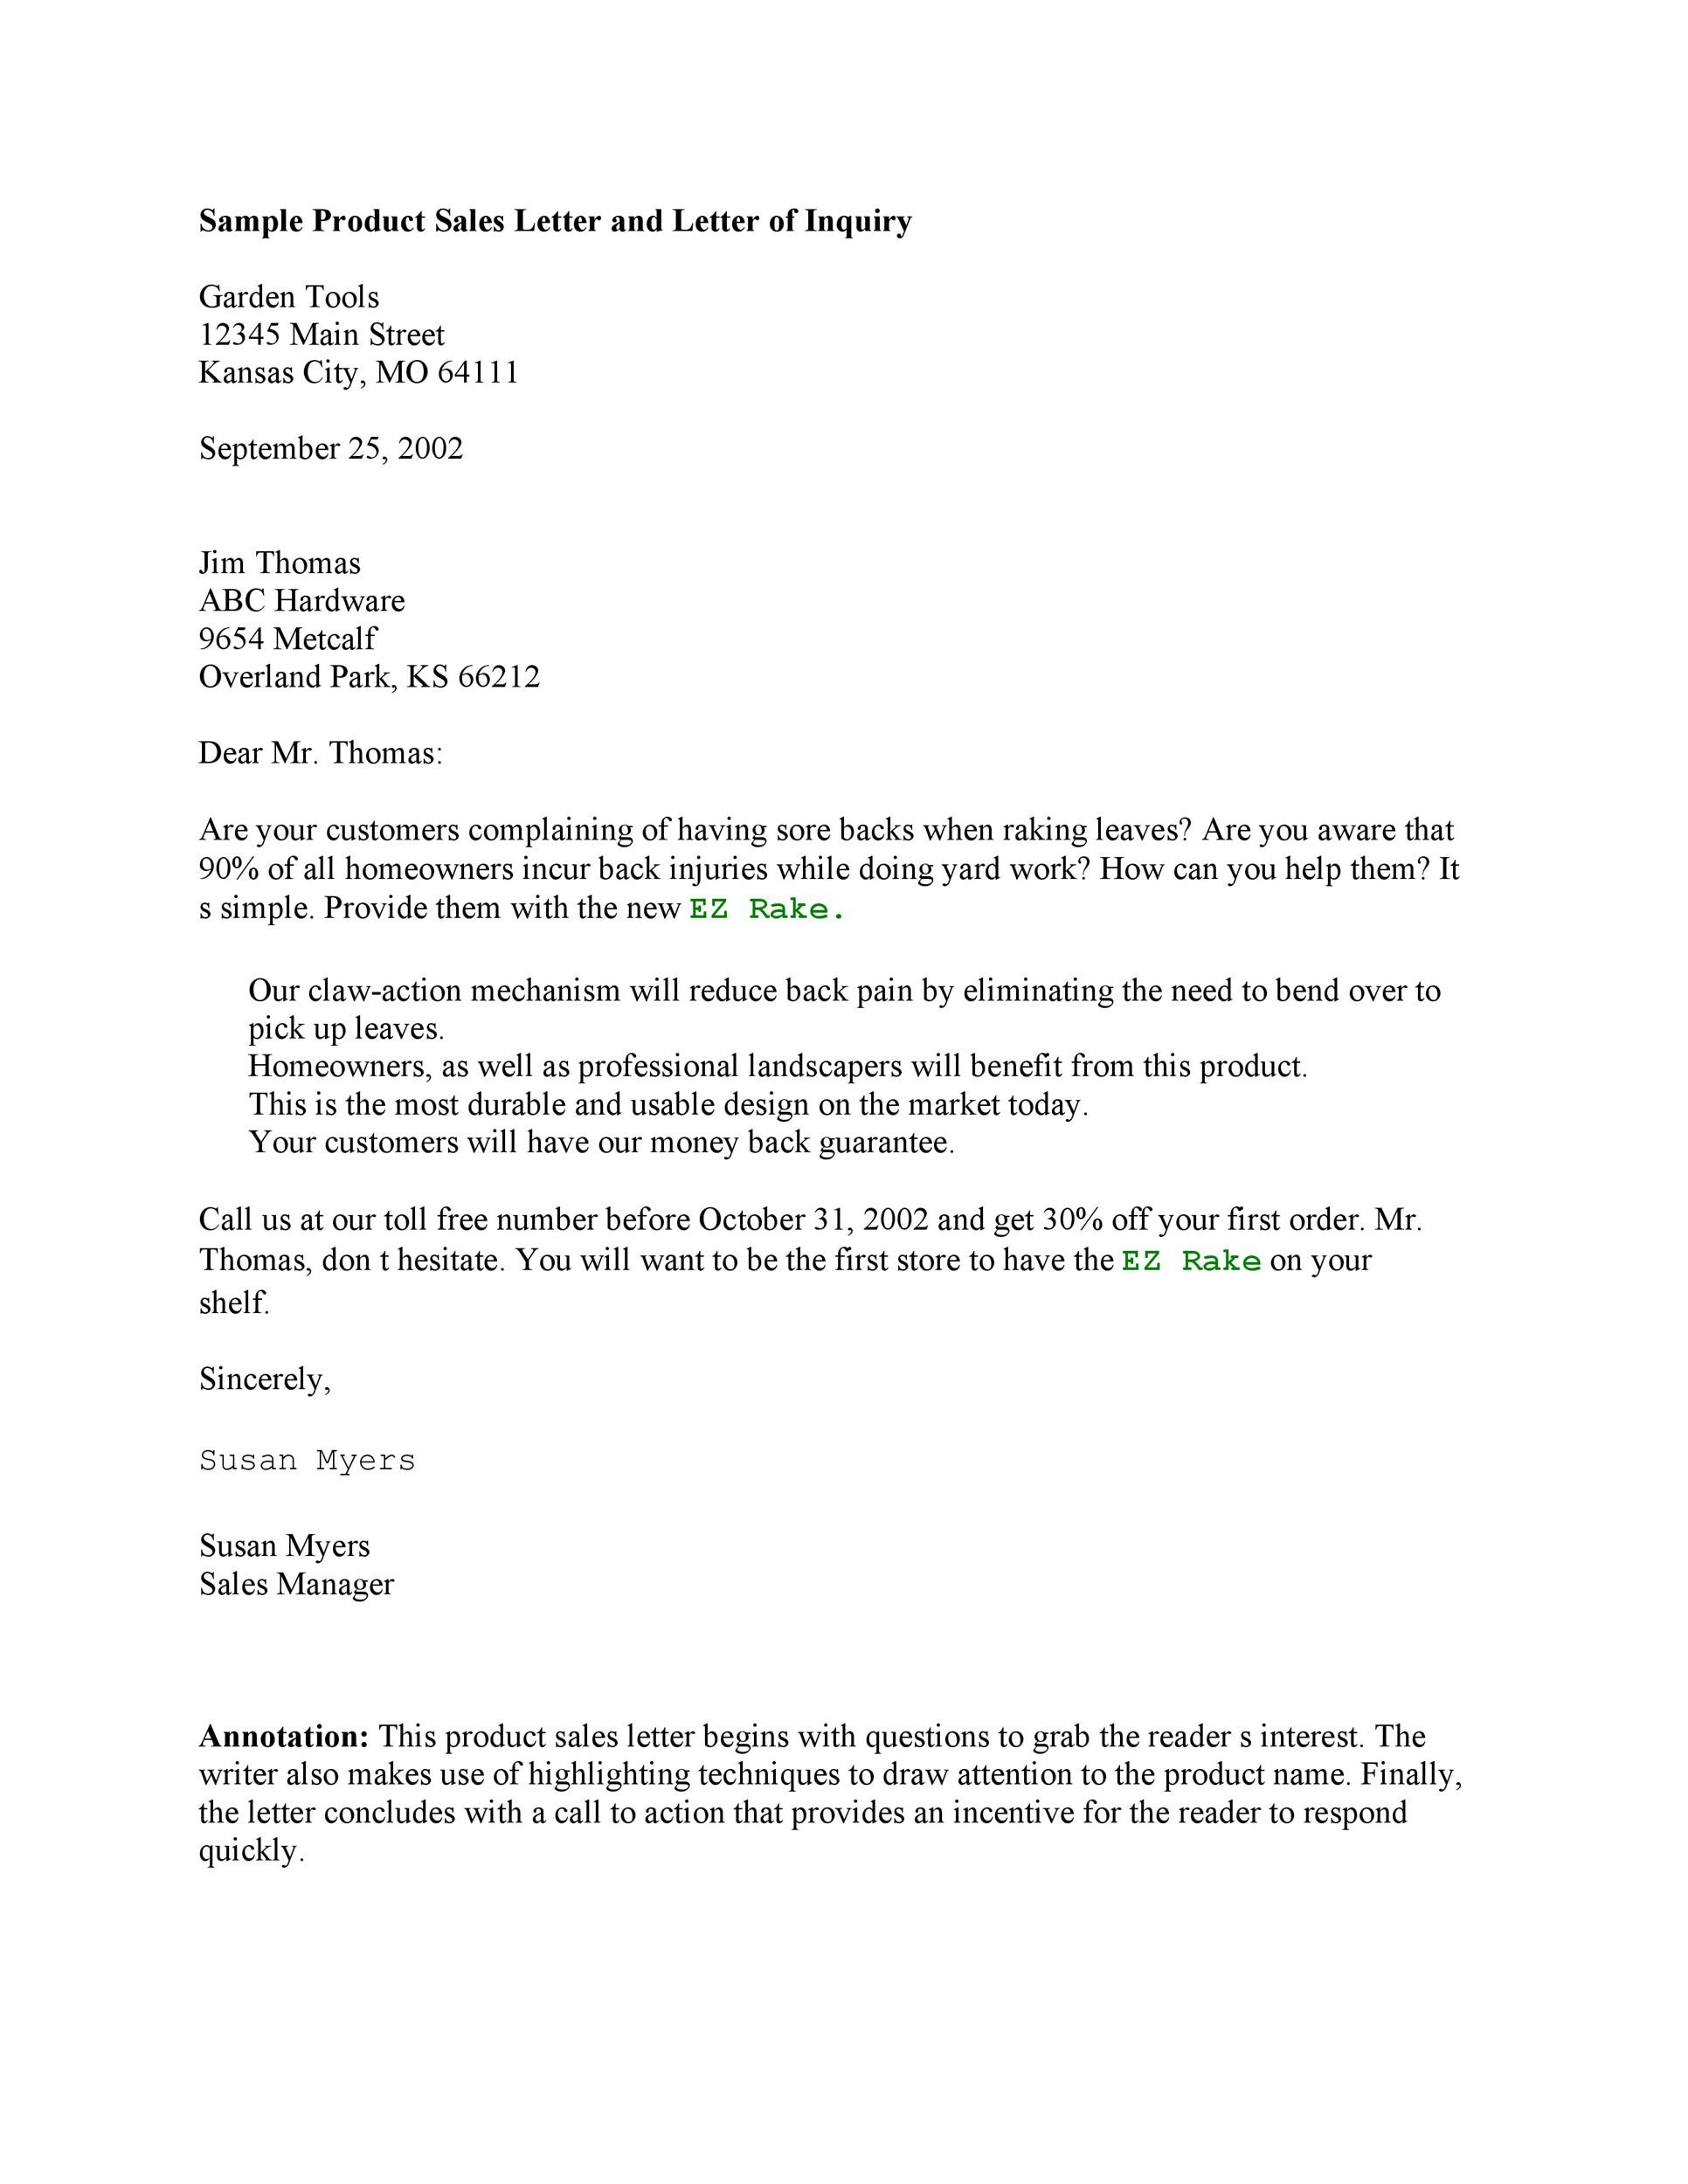 Sample Letter To Promote Your Business from templatelab.com